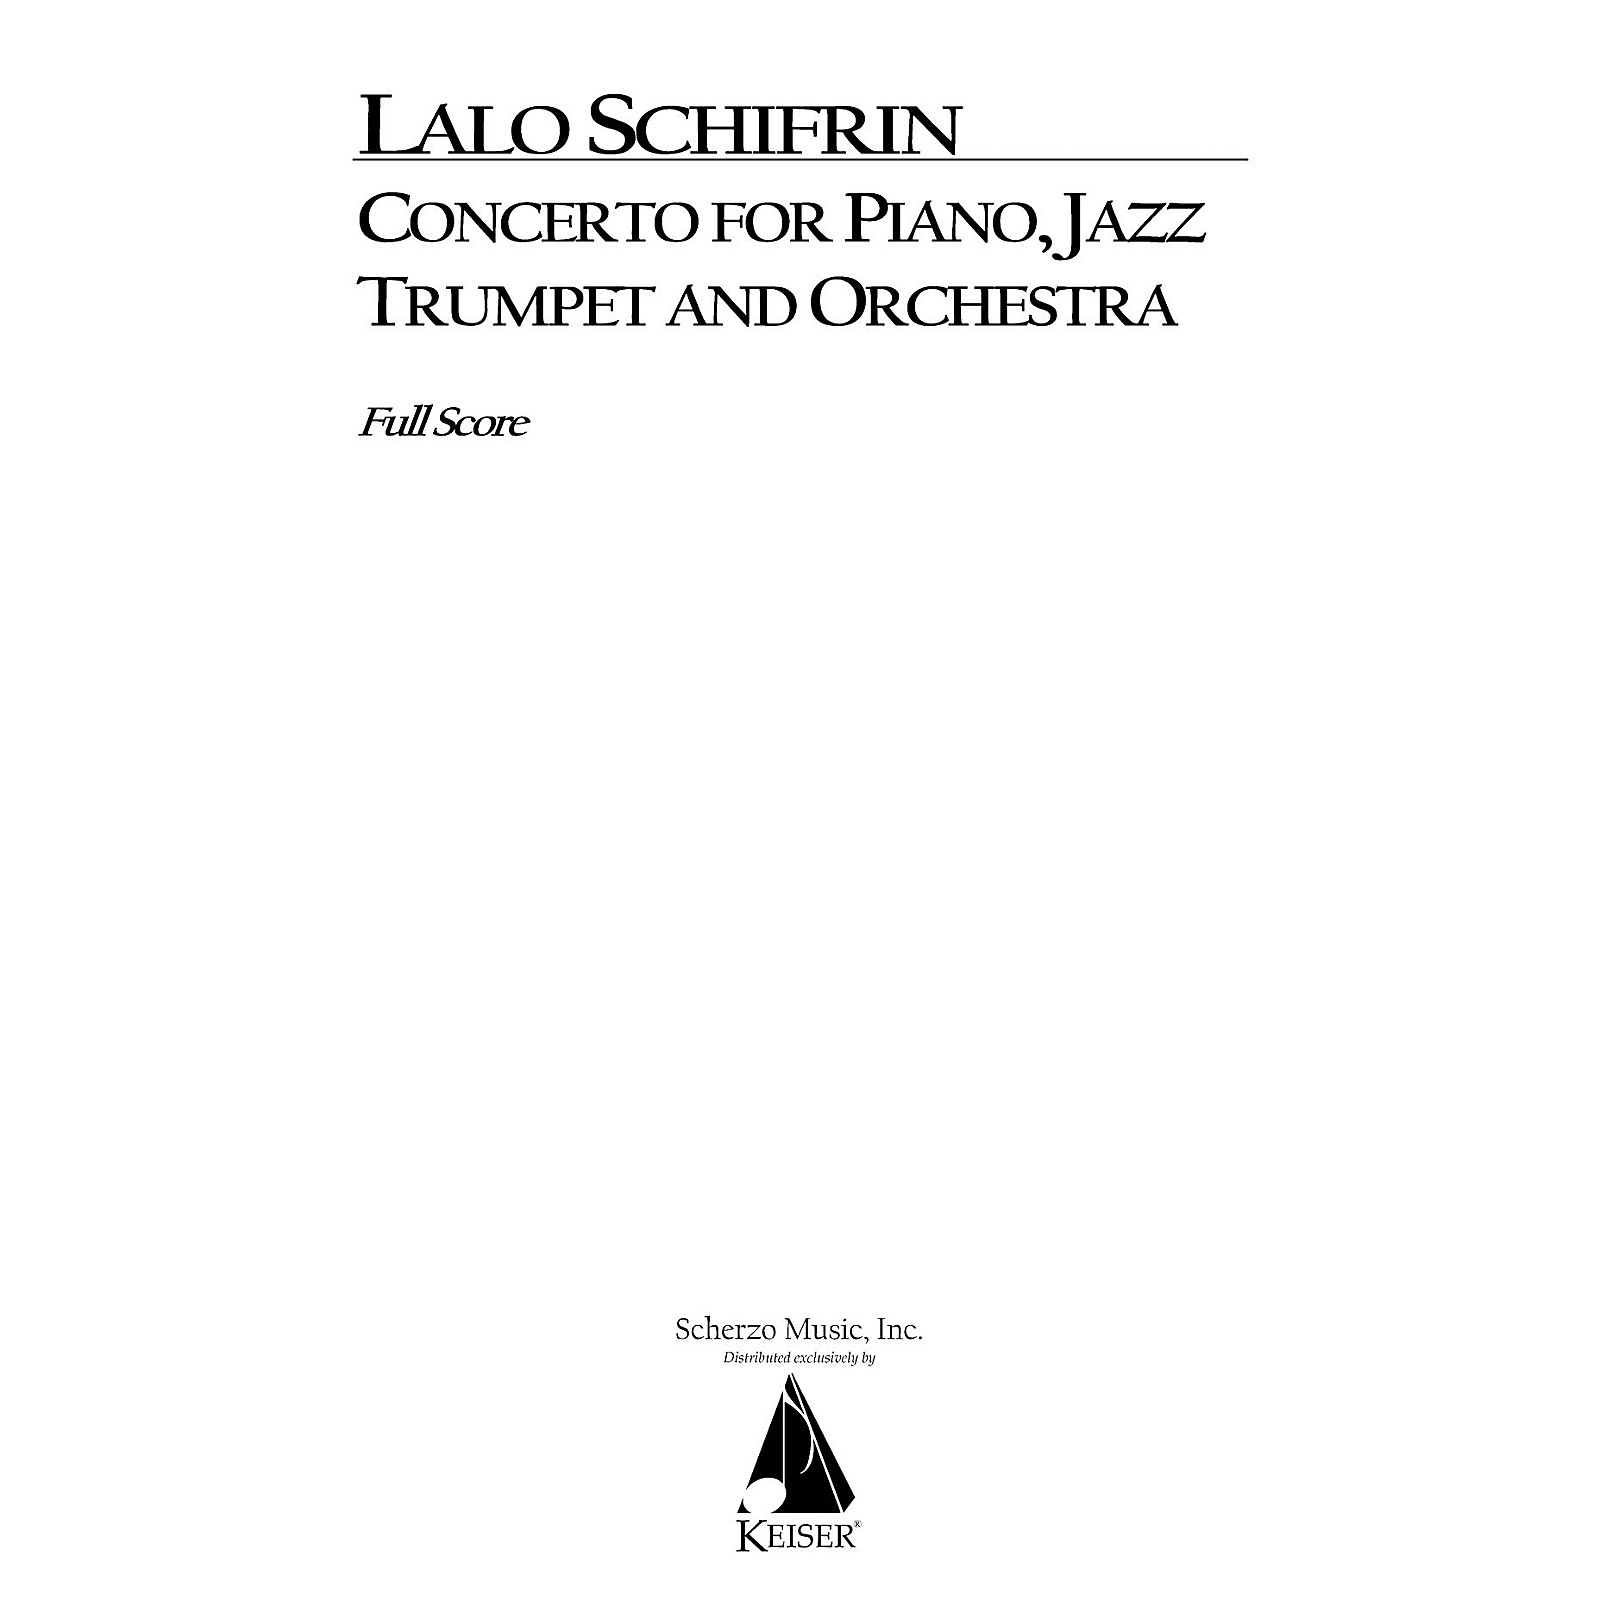 Lauren Keiser Music Publishing Concerto for Piano, Jazz Trumpet and Orchestra (Full Score) LKM Music Series by Lalo Schifrin